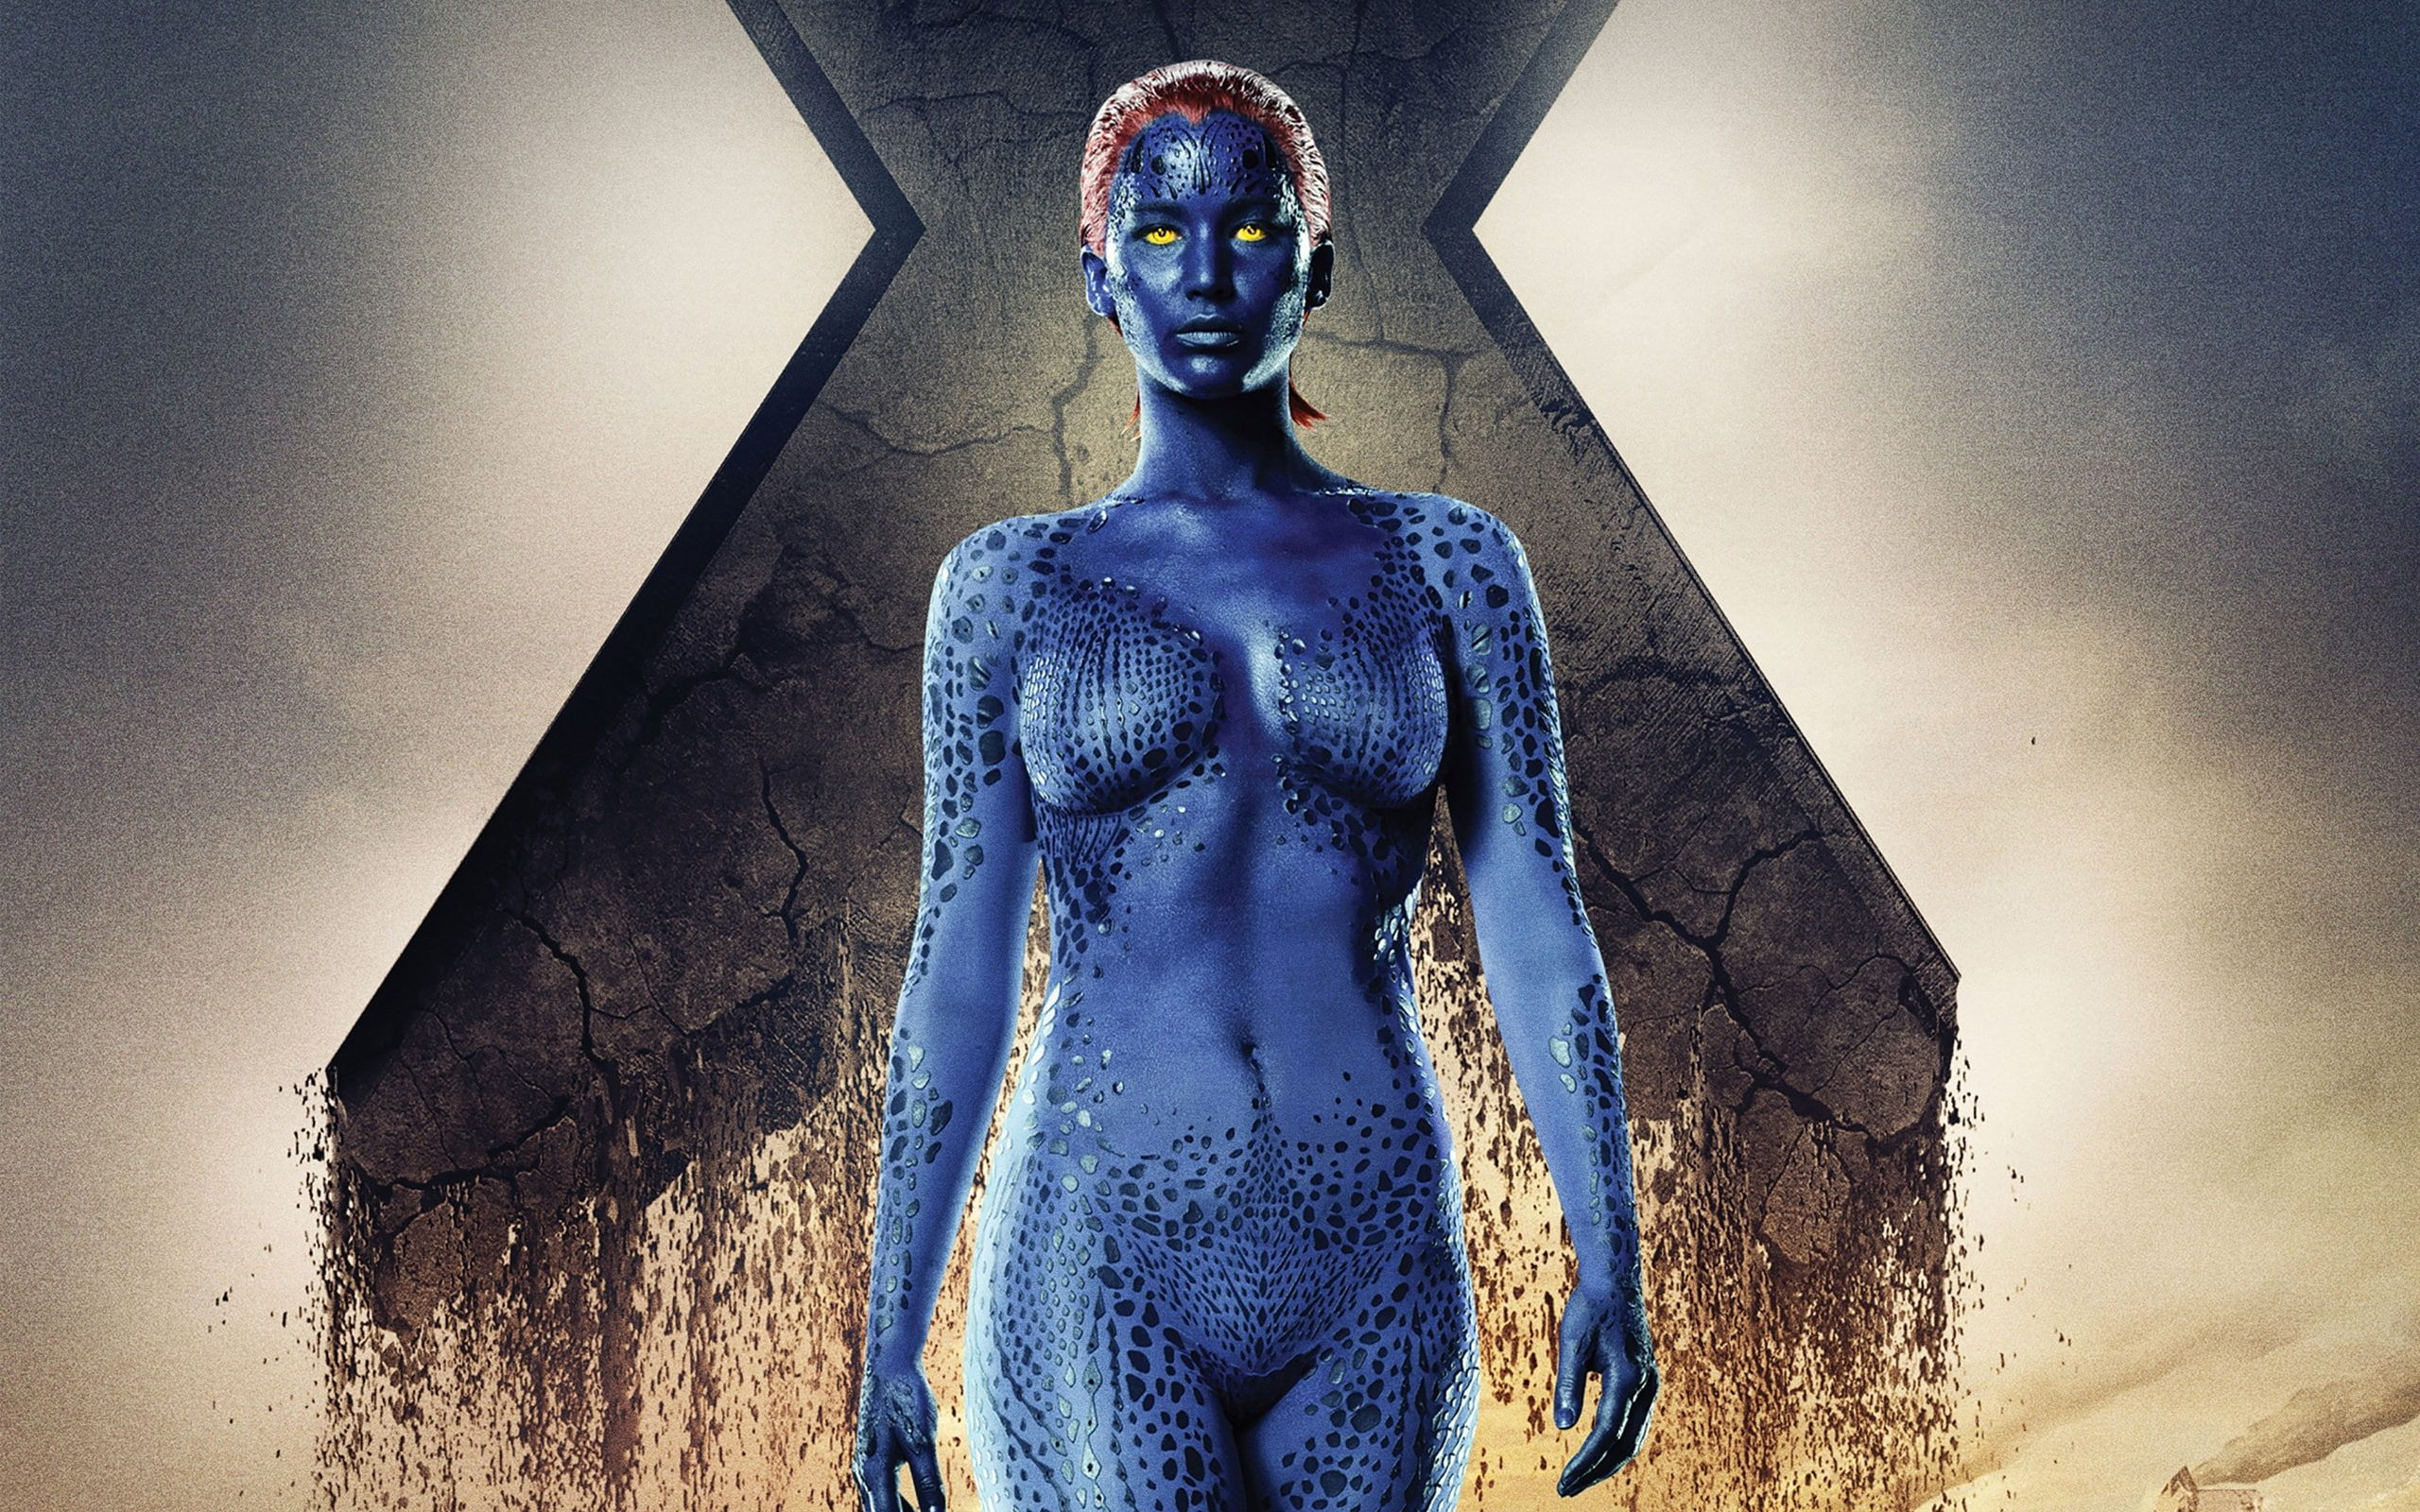 Jennifer Lawrence X Men Days Of Future Past Jennifer Lawrence X Men Future 2k Wallpaper Hdwall In 2020 Jennifer Lawrence X Men Badass Movie Jennifer Lawrence